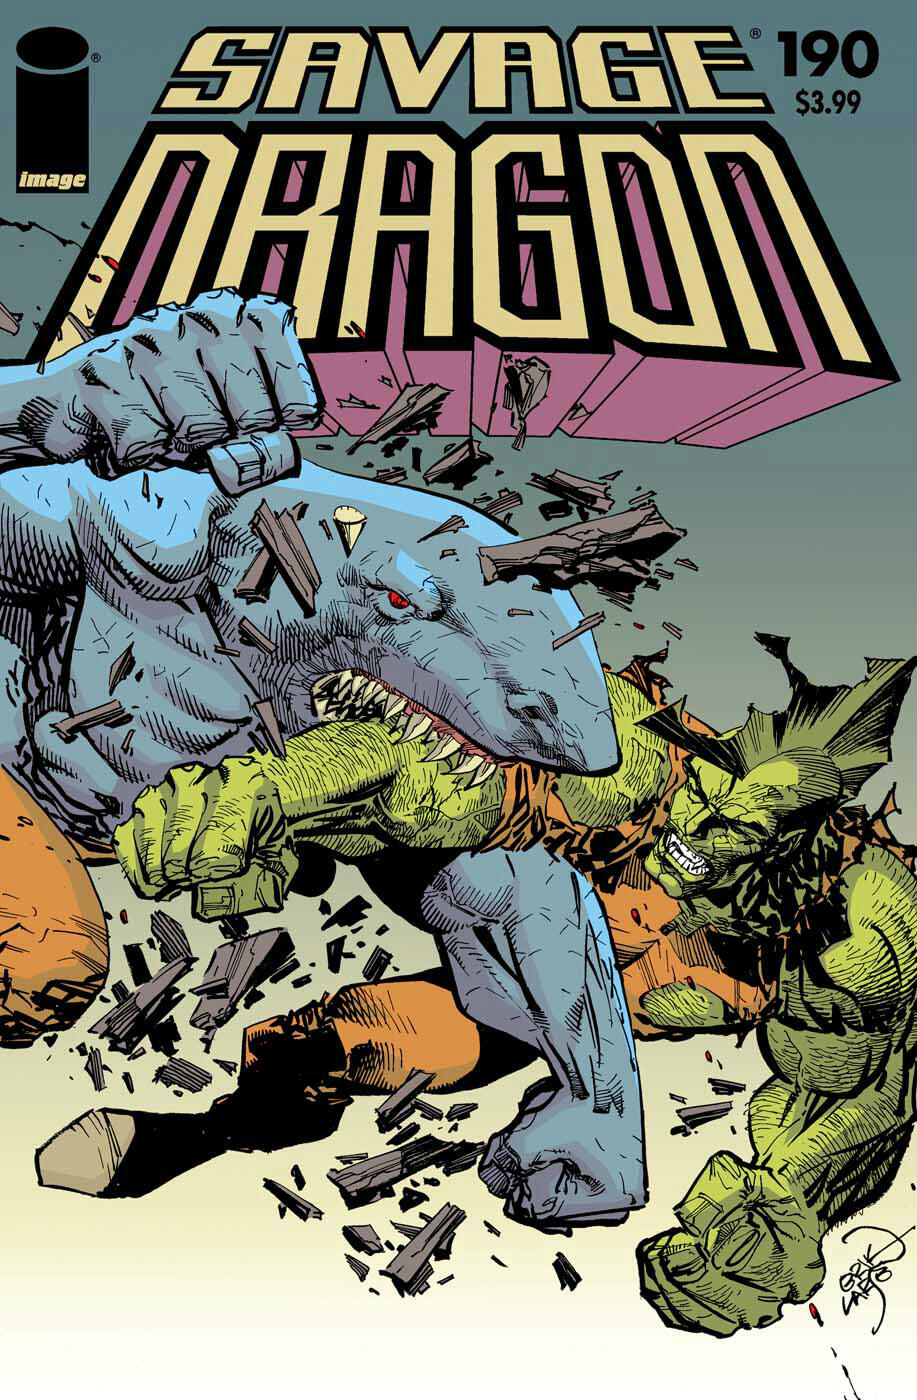 savagedragon190